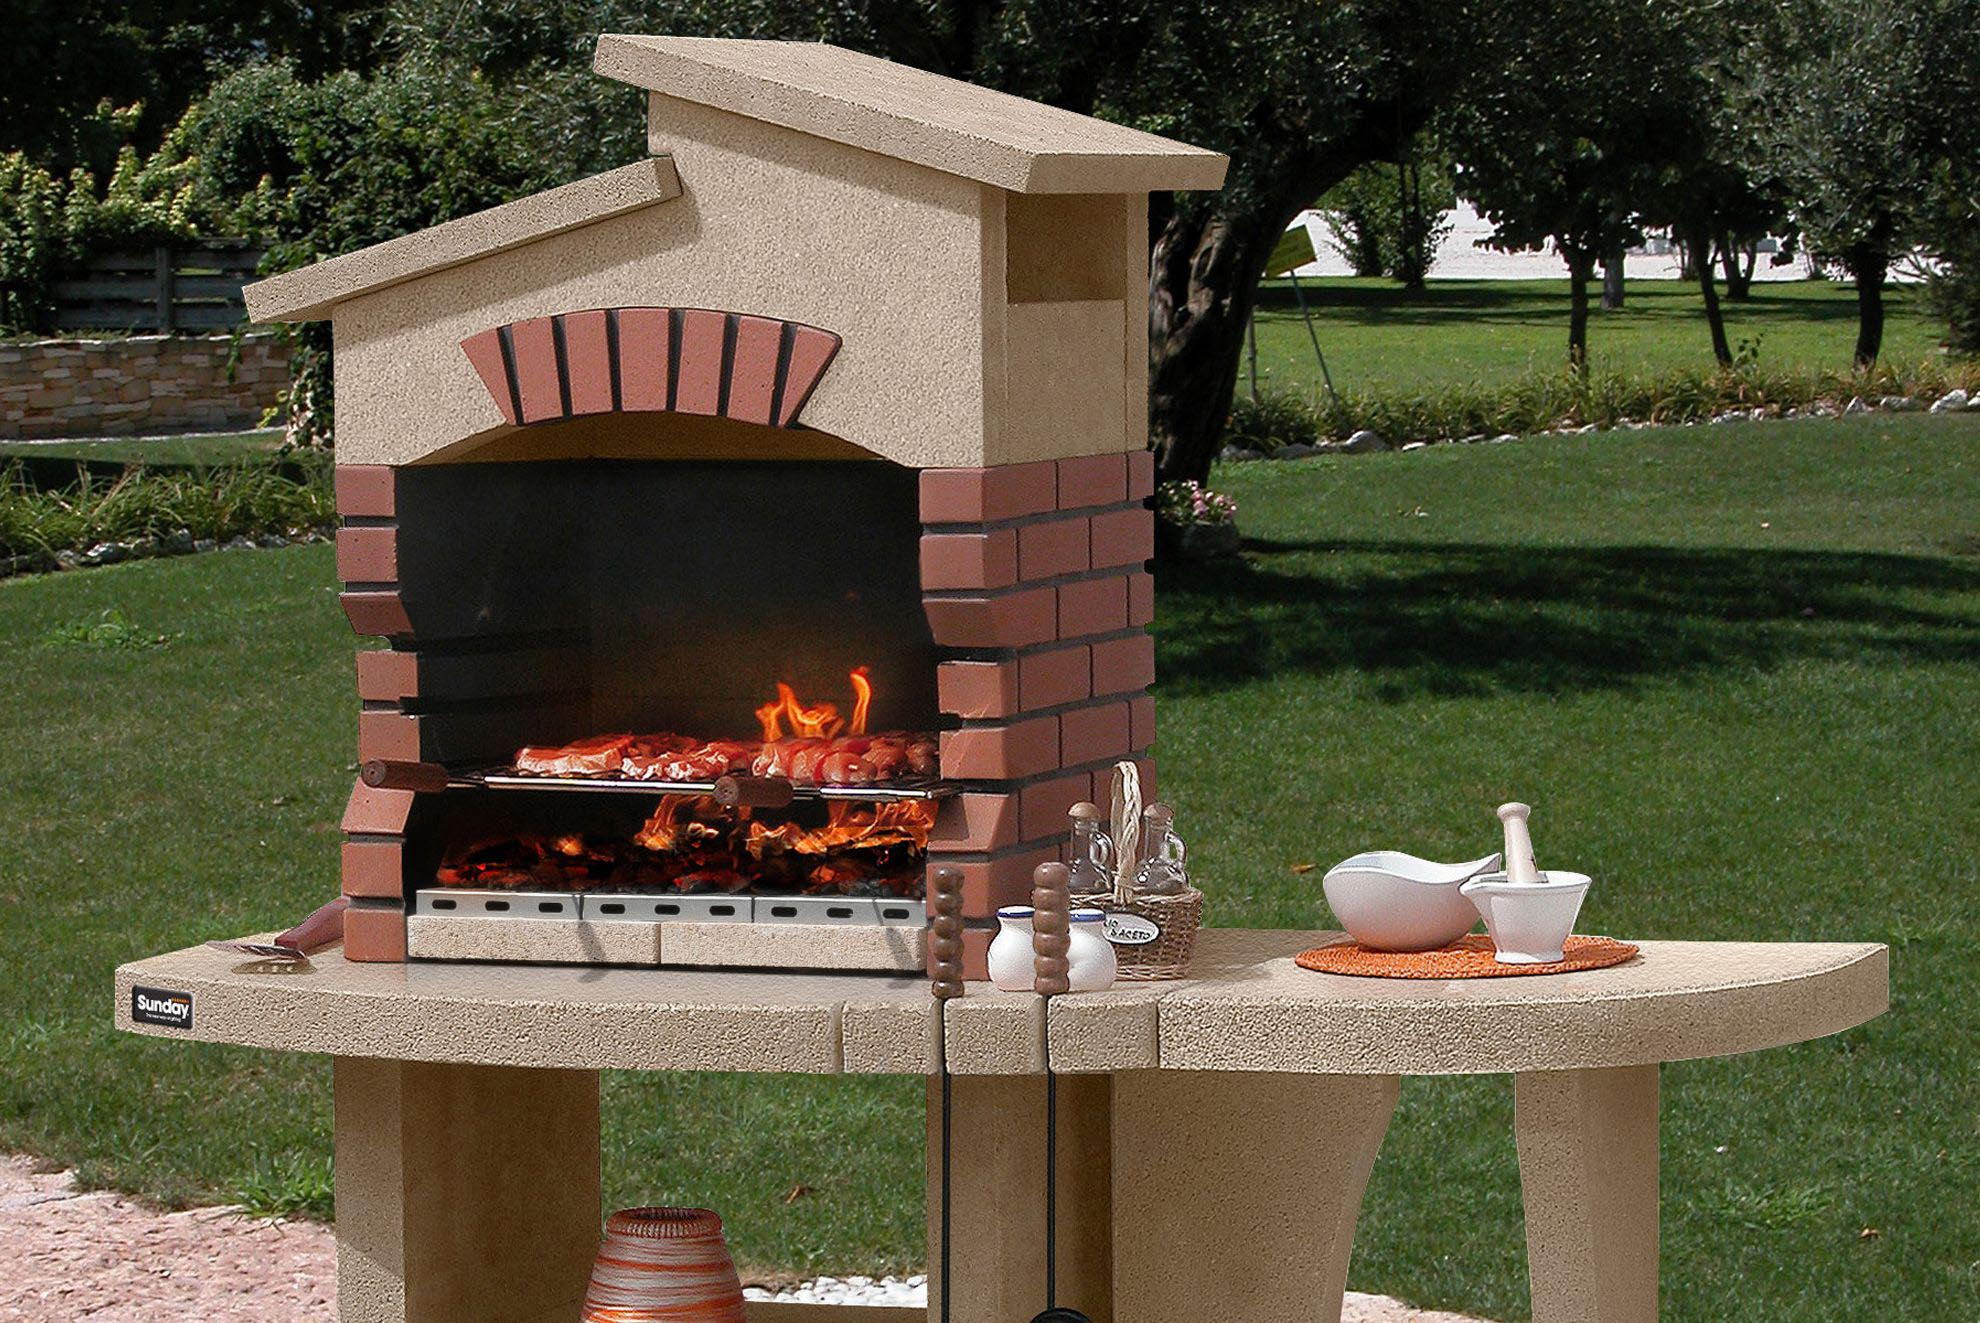 create brick bbq plans before building barbeque or grill fire pit design ideas. Black Bedroom Furniture Sets. Home Design Ideas